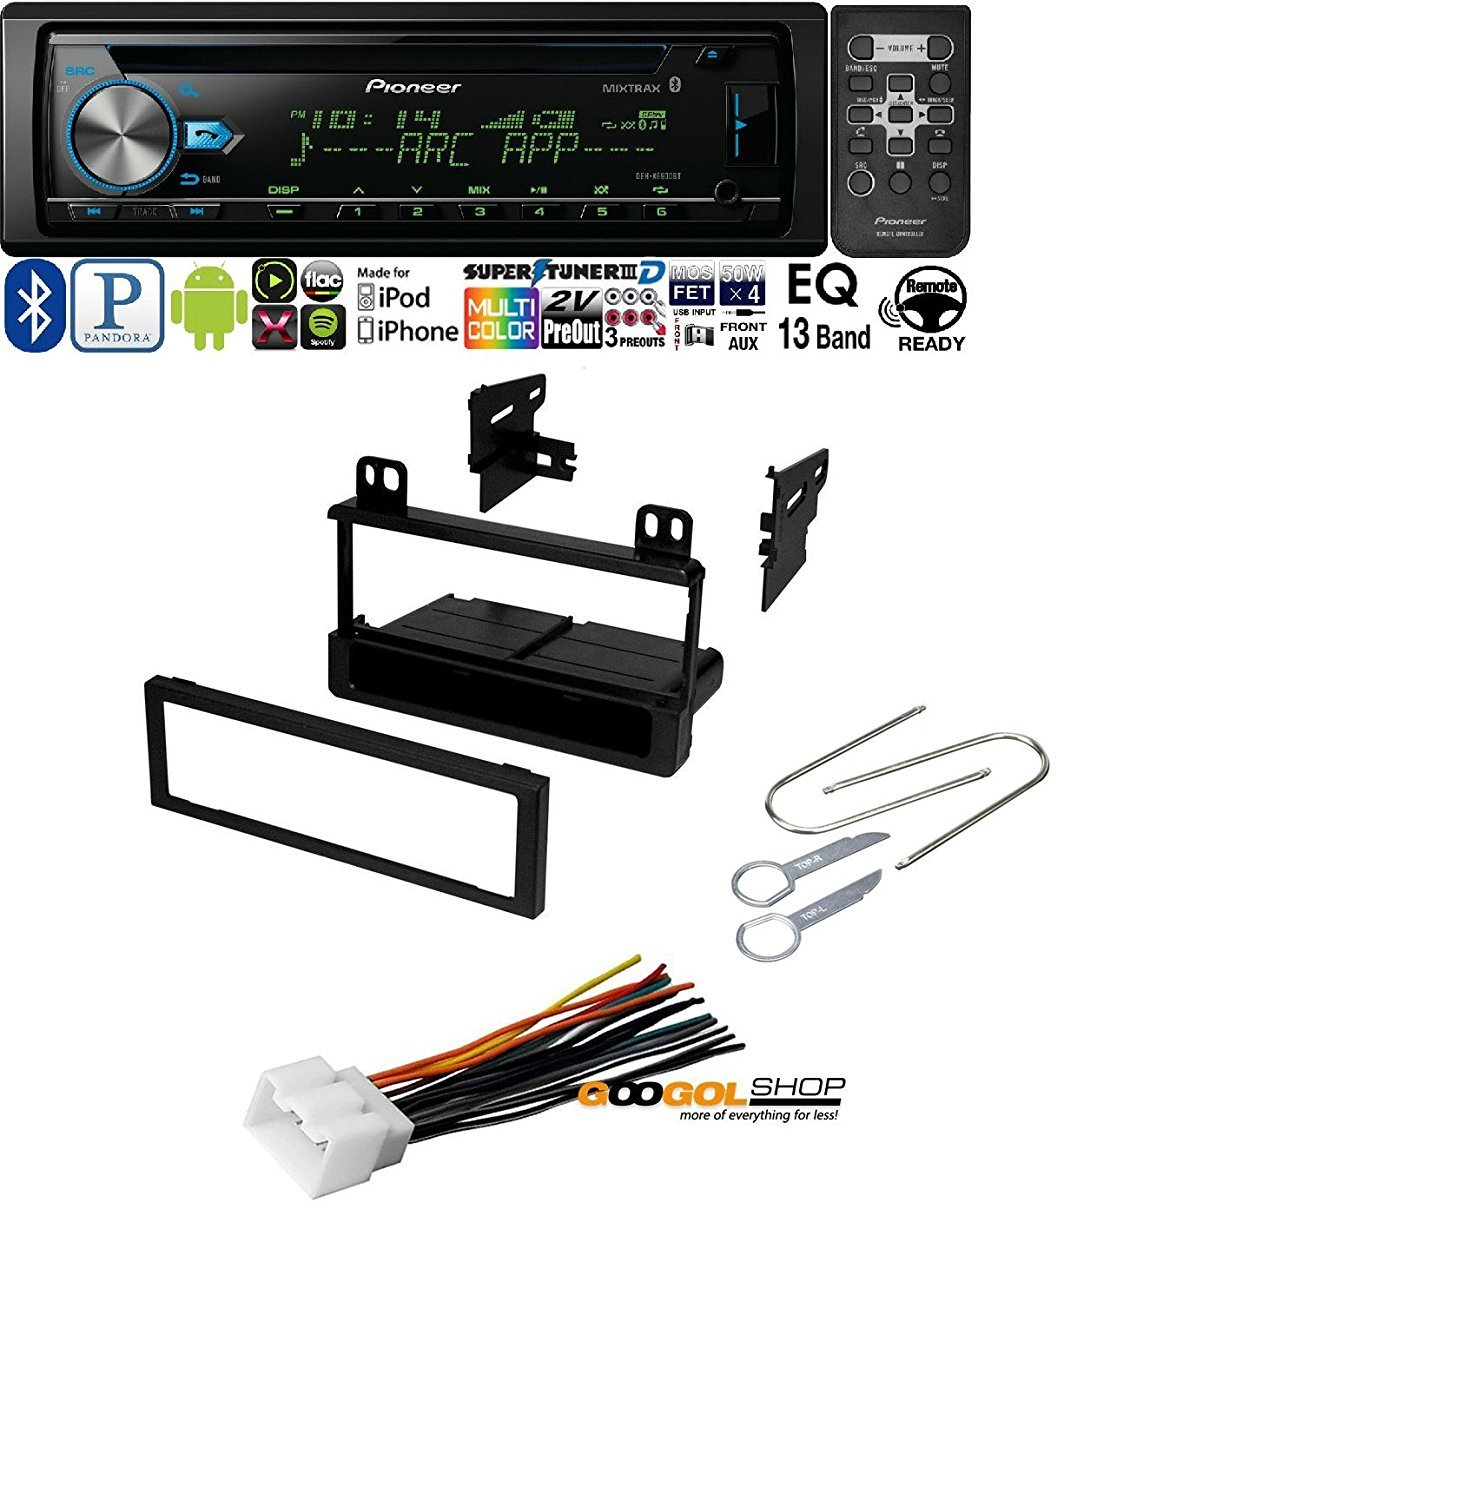 hight resolution of car stereo radio kit dash installation mounting kit wiring harness removal tools with pioneer deh x6900bt vehicle cd digital music player receivers black